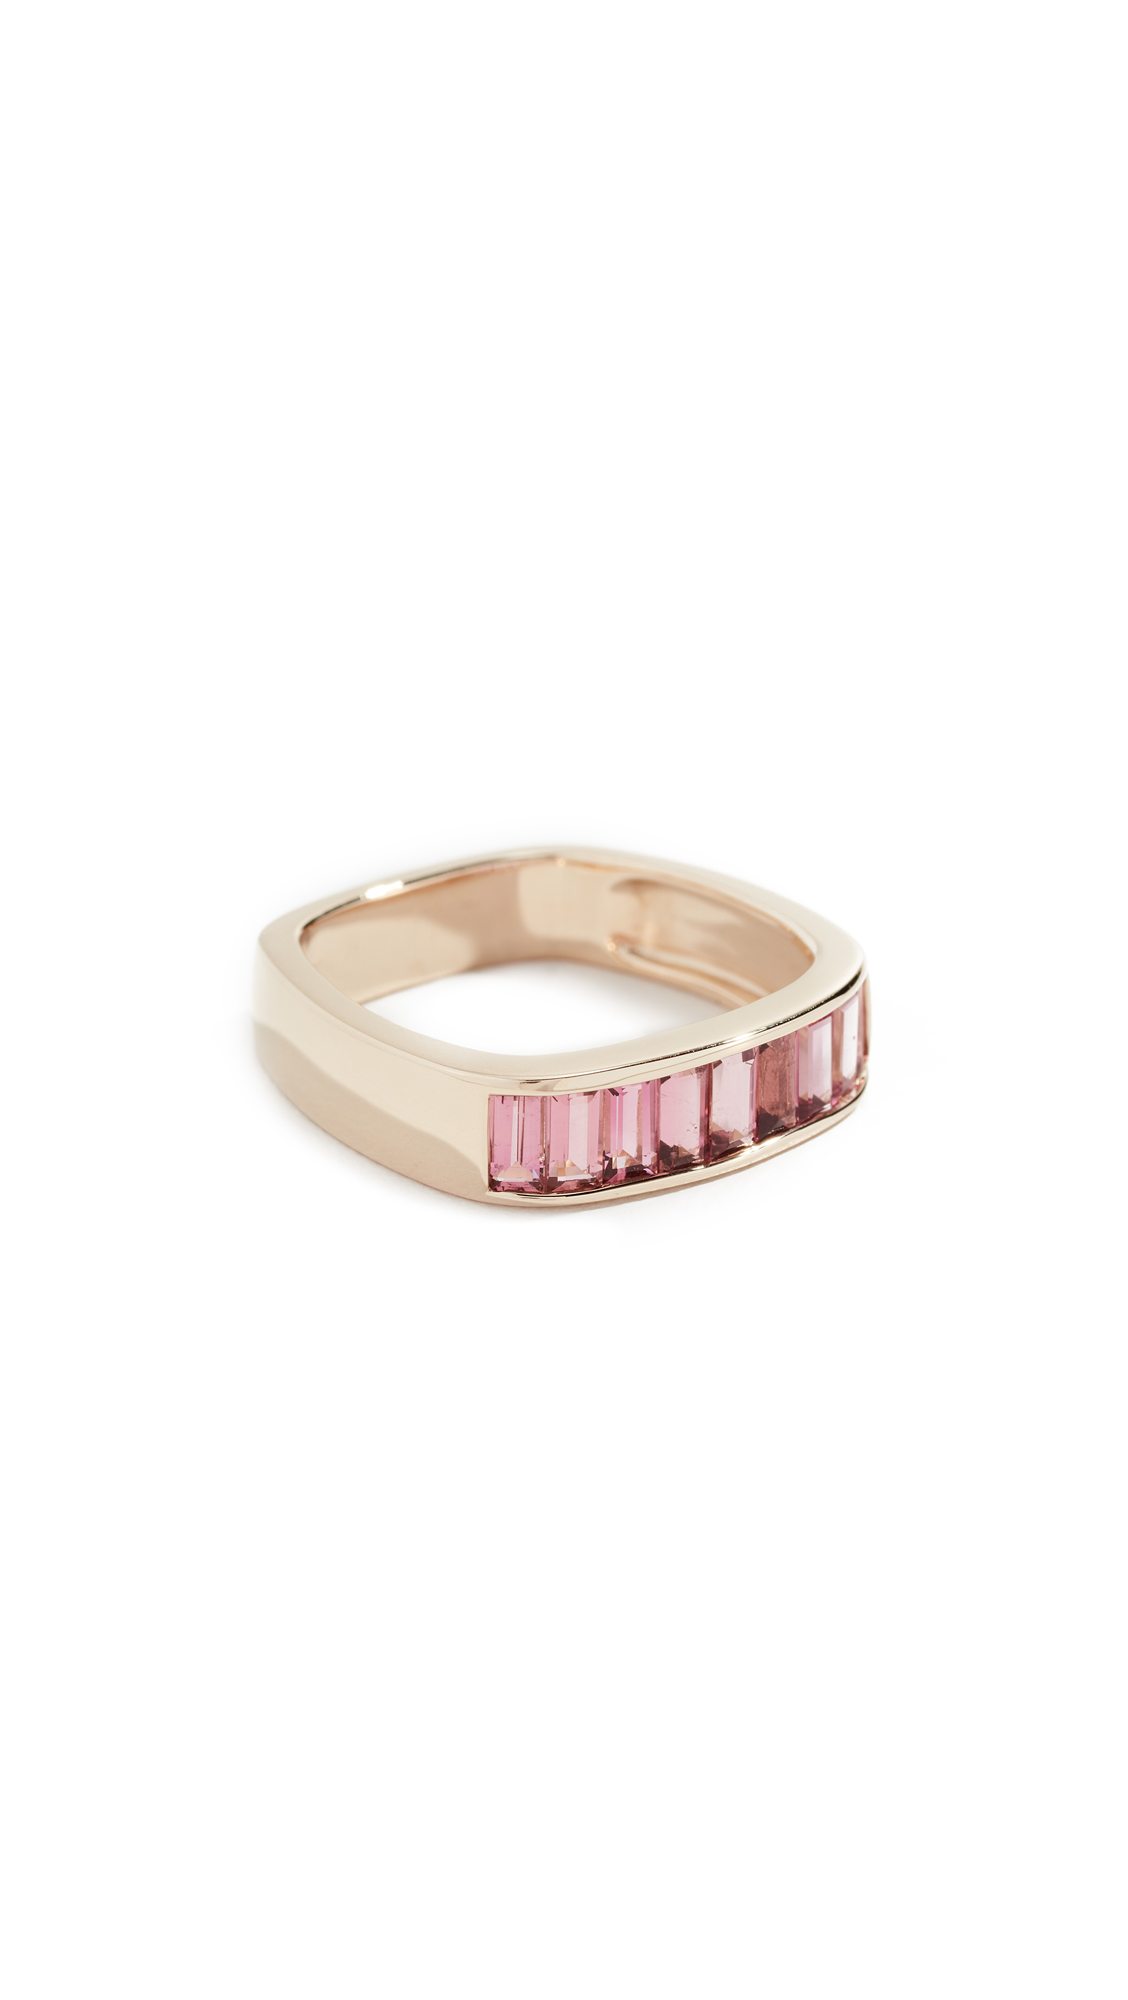 JANE TAYLOR 14K Square Band Ring in Pink